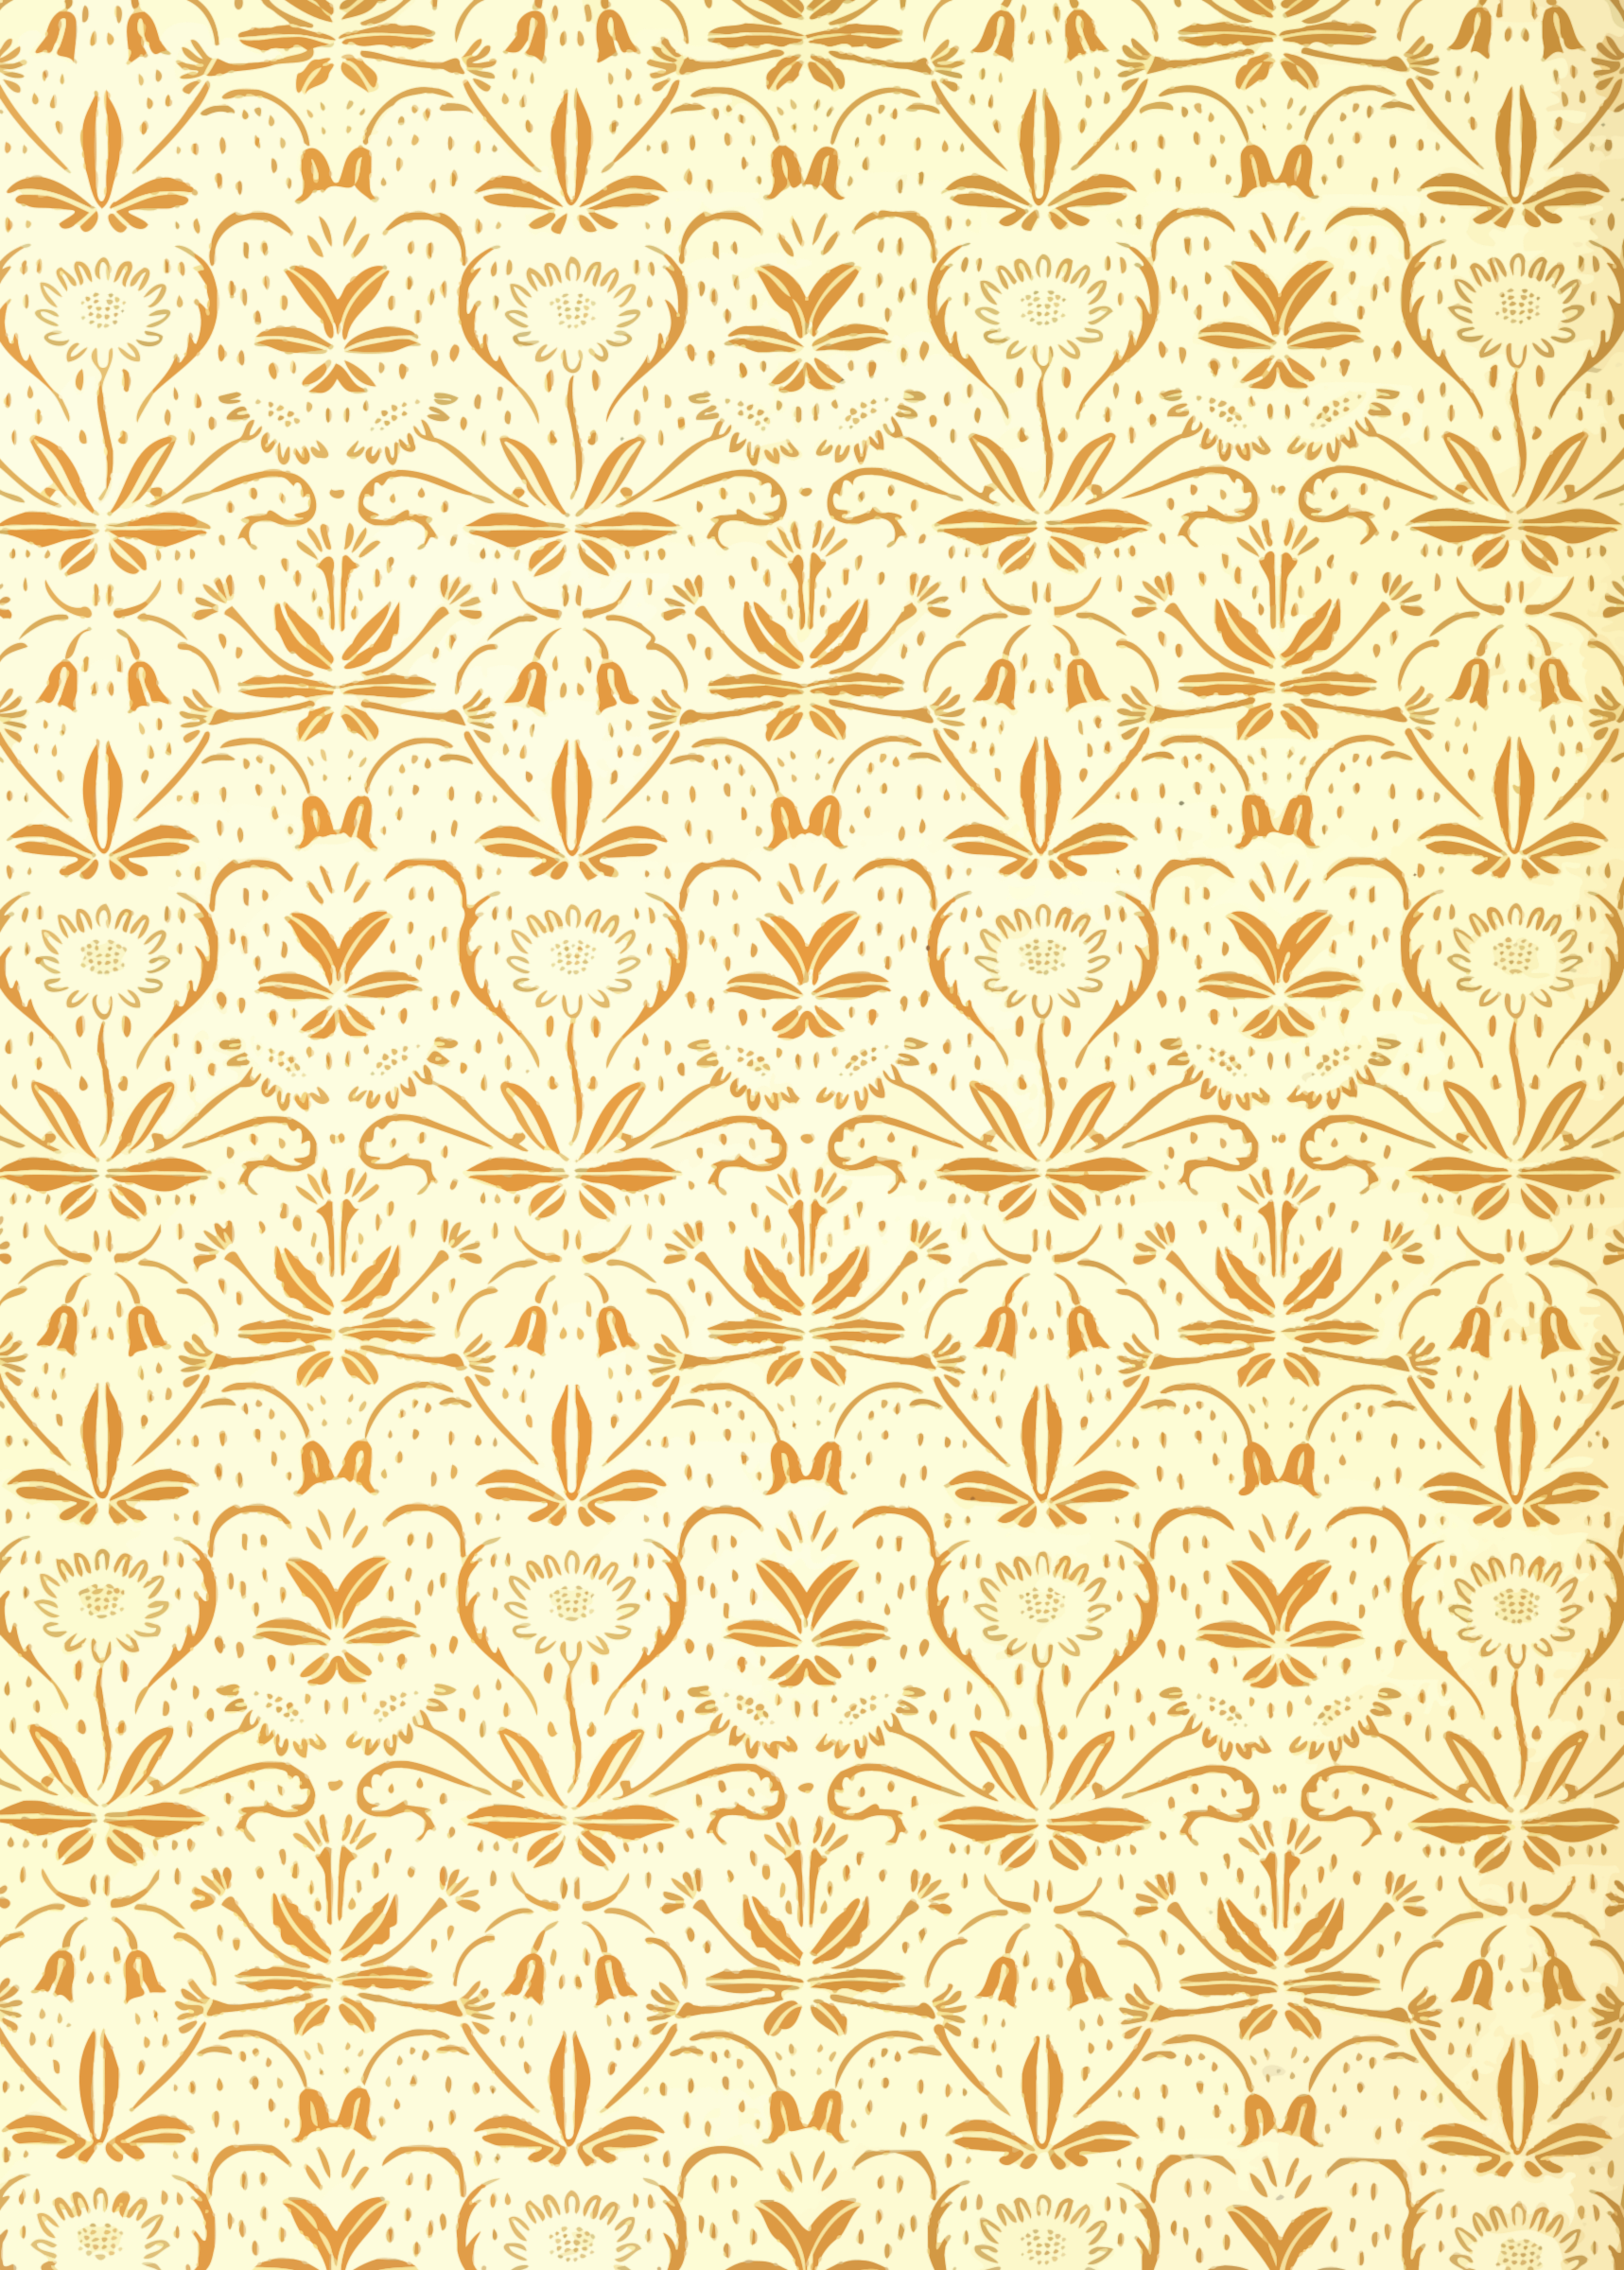 Flowery pattern by Firkin